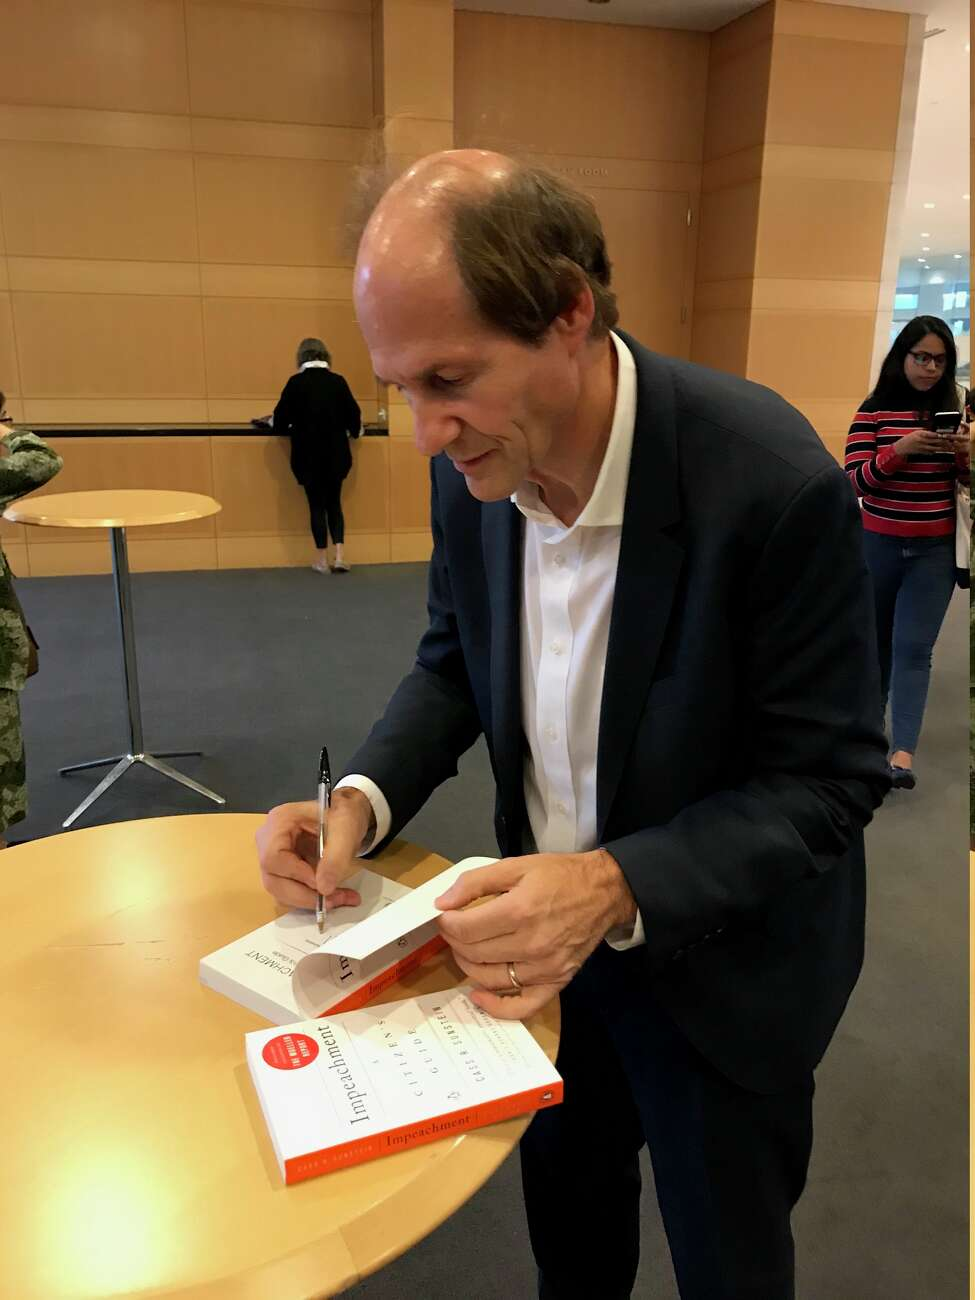 Harvard Law professor and Constitutional scholar Cass Sunstein signs copies of his book,